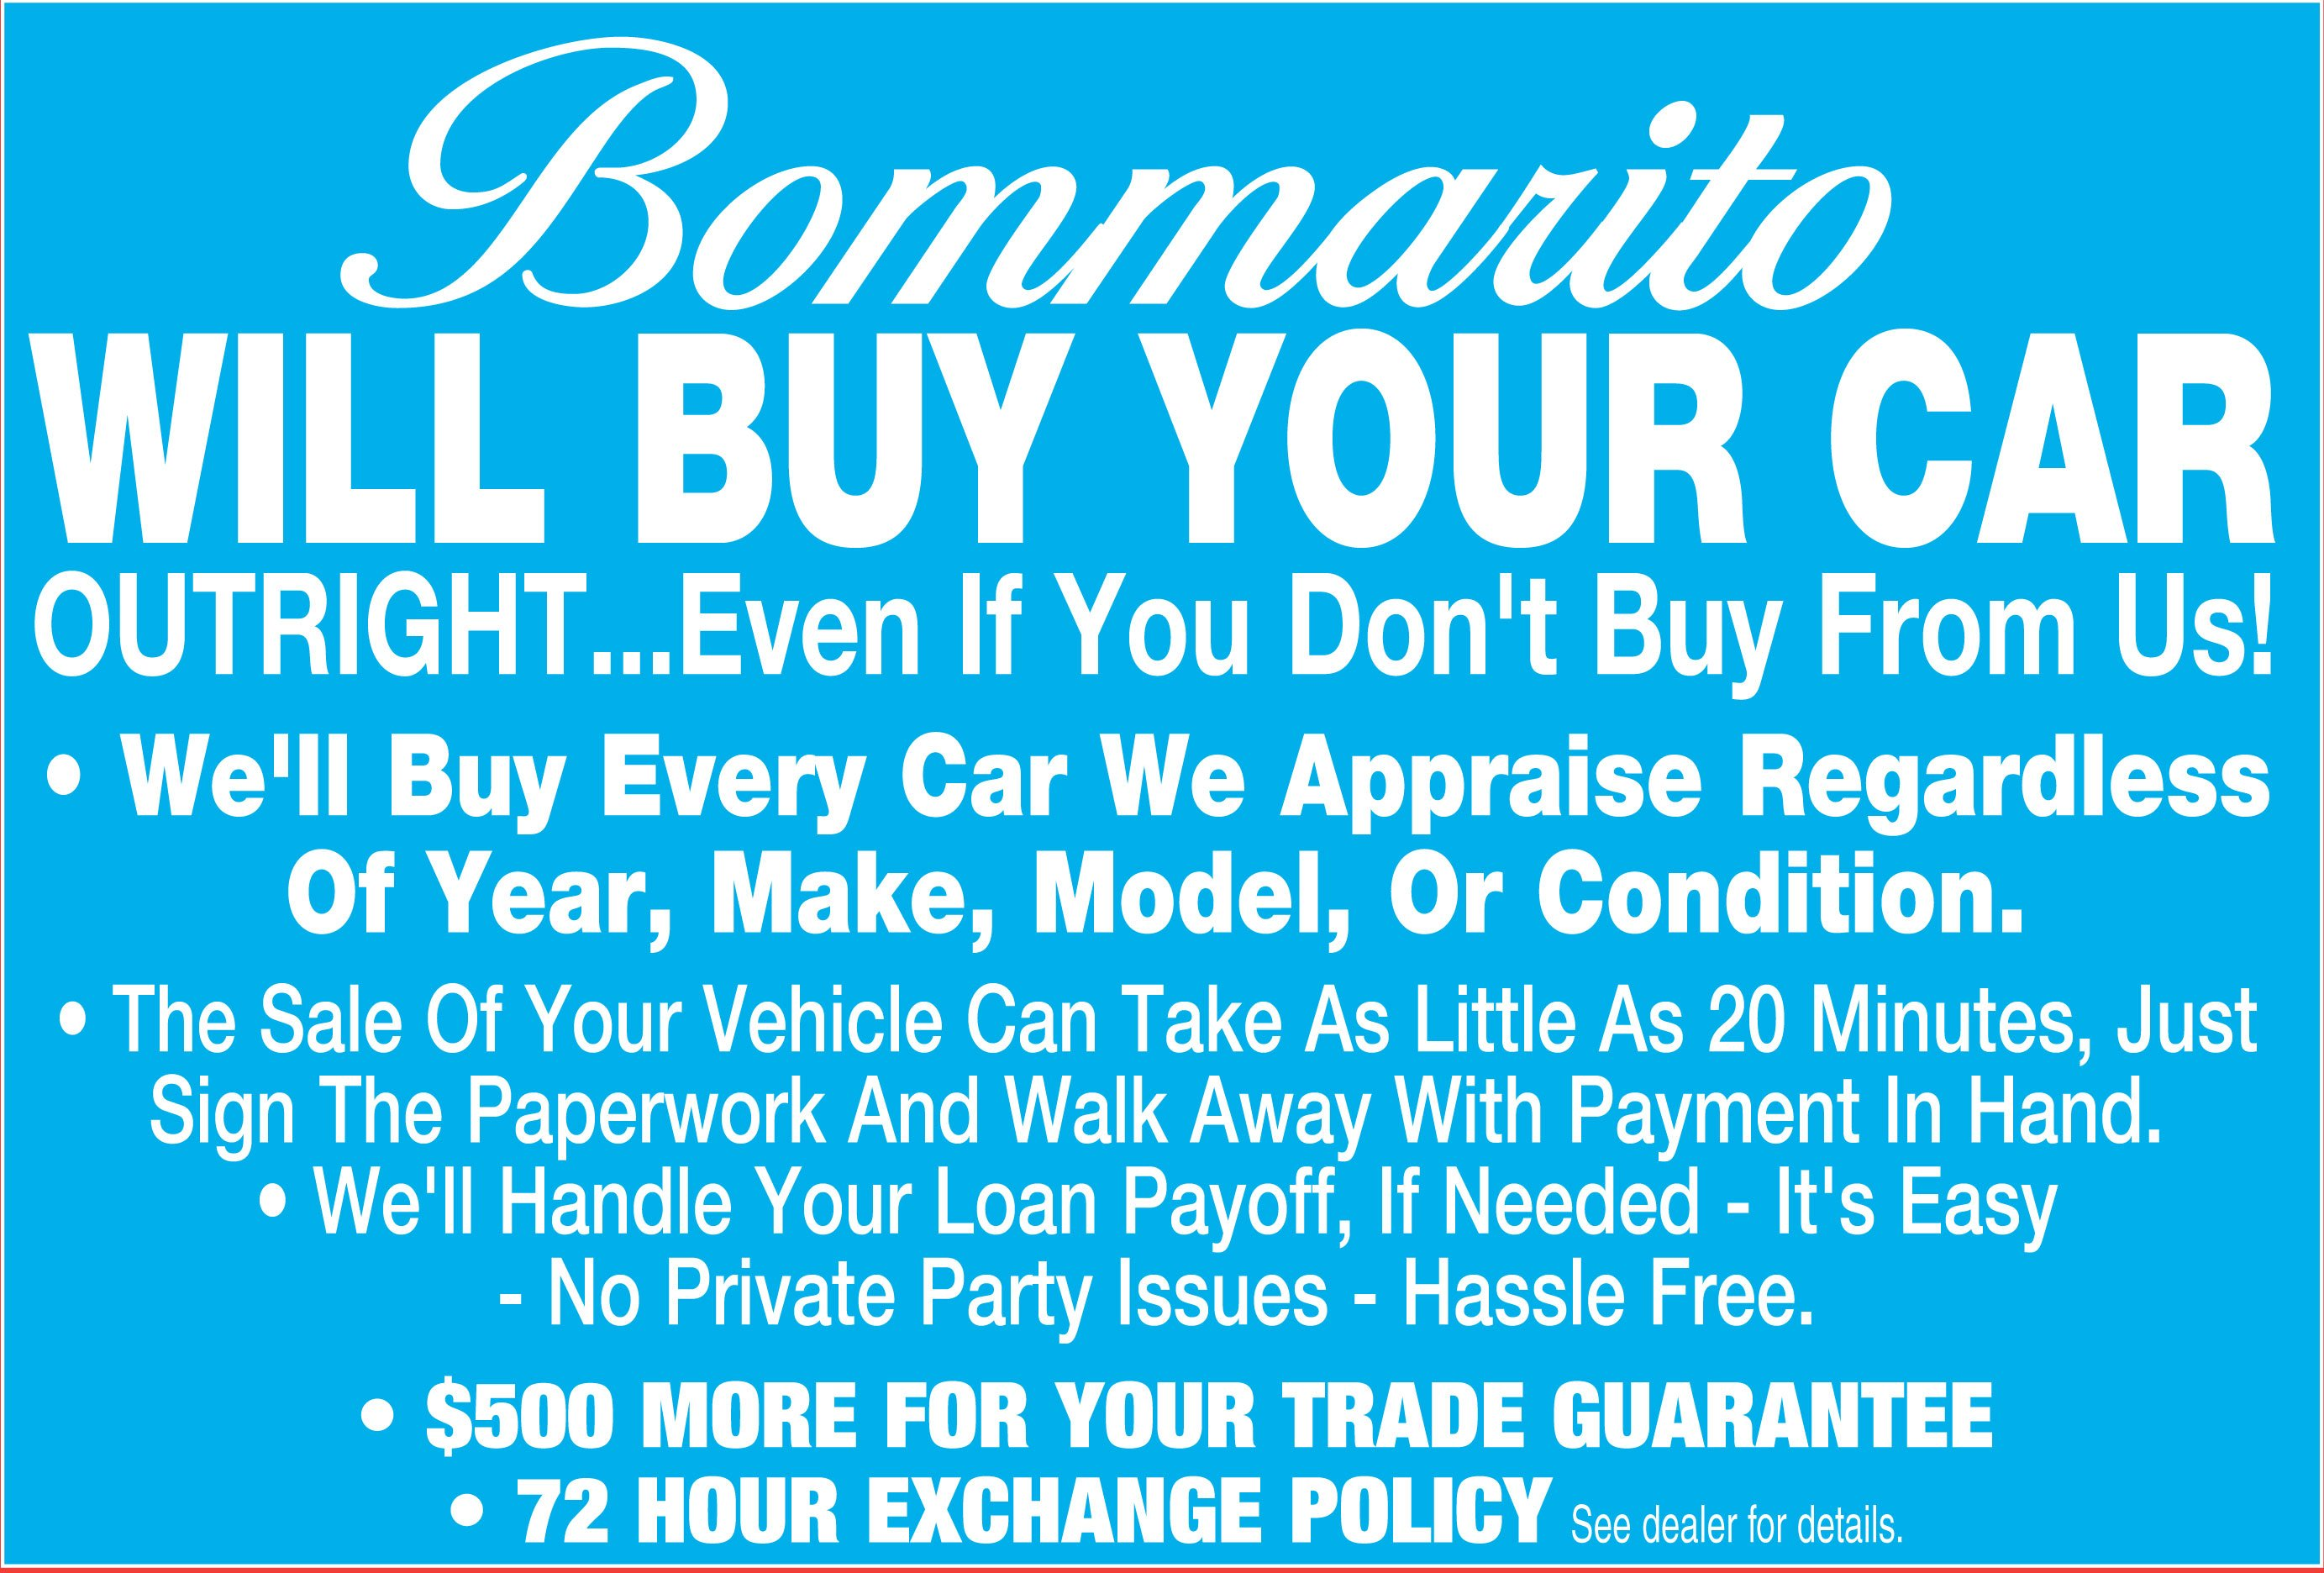 Will-Buy-Car-Full-Page.jpg